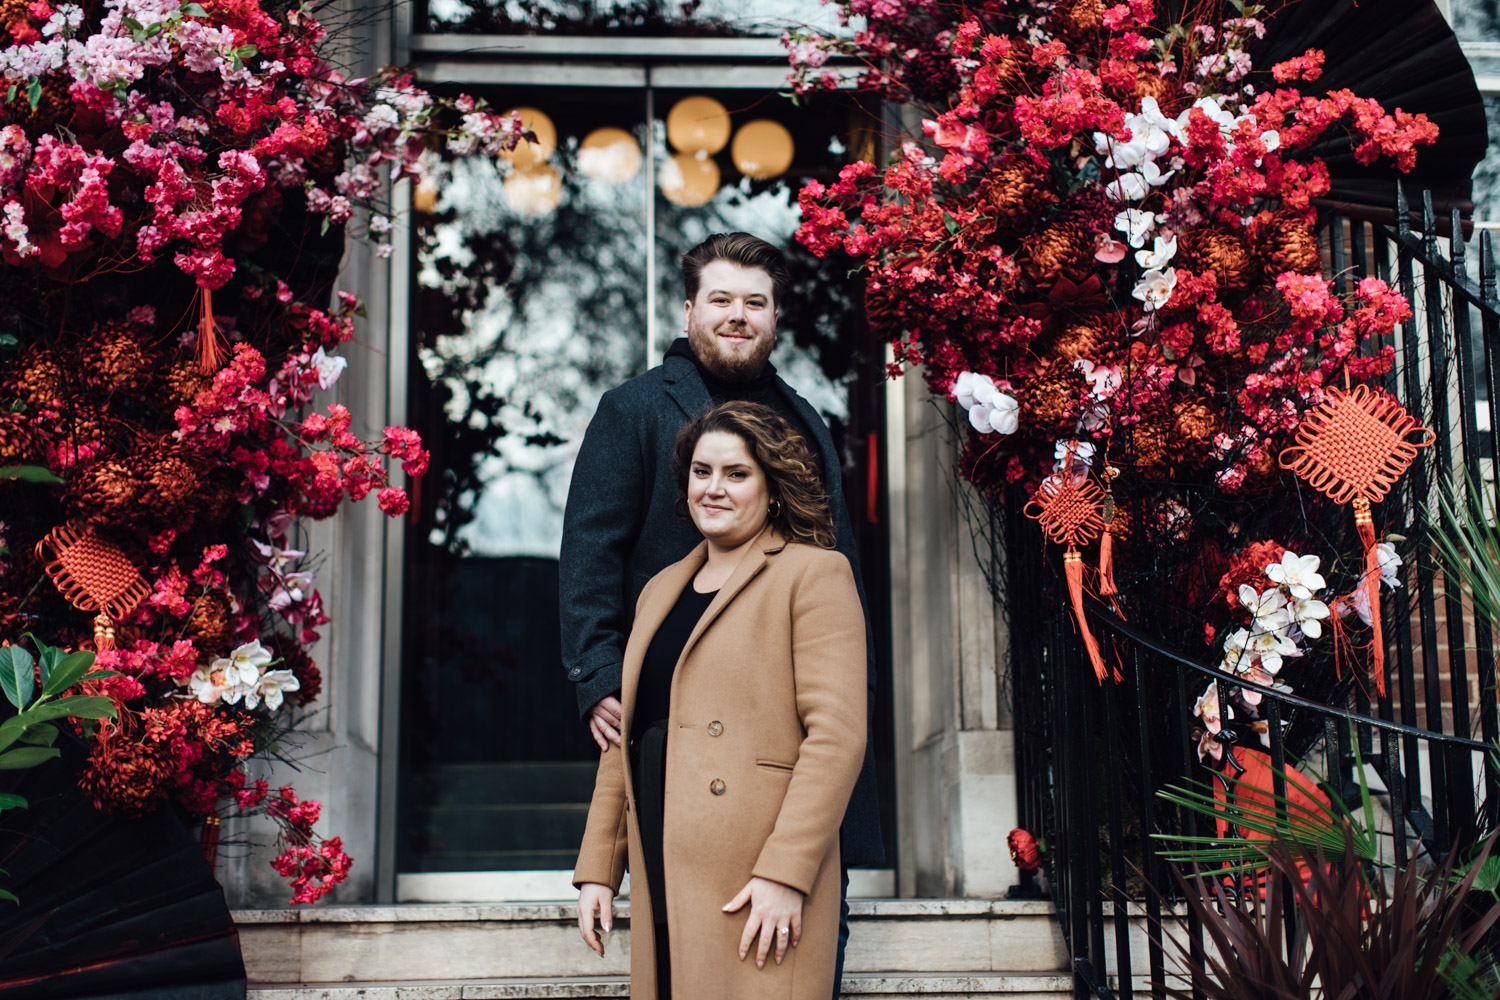 London engagement photography by September Pictures